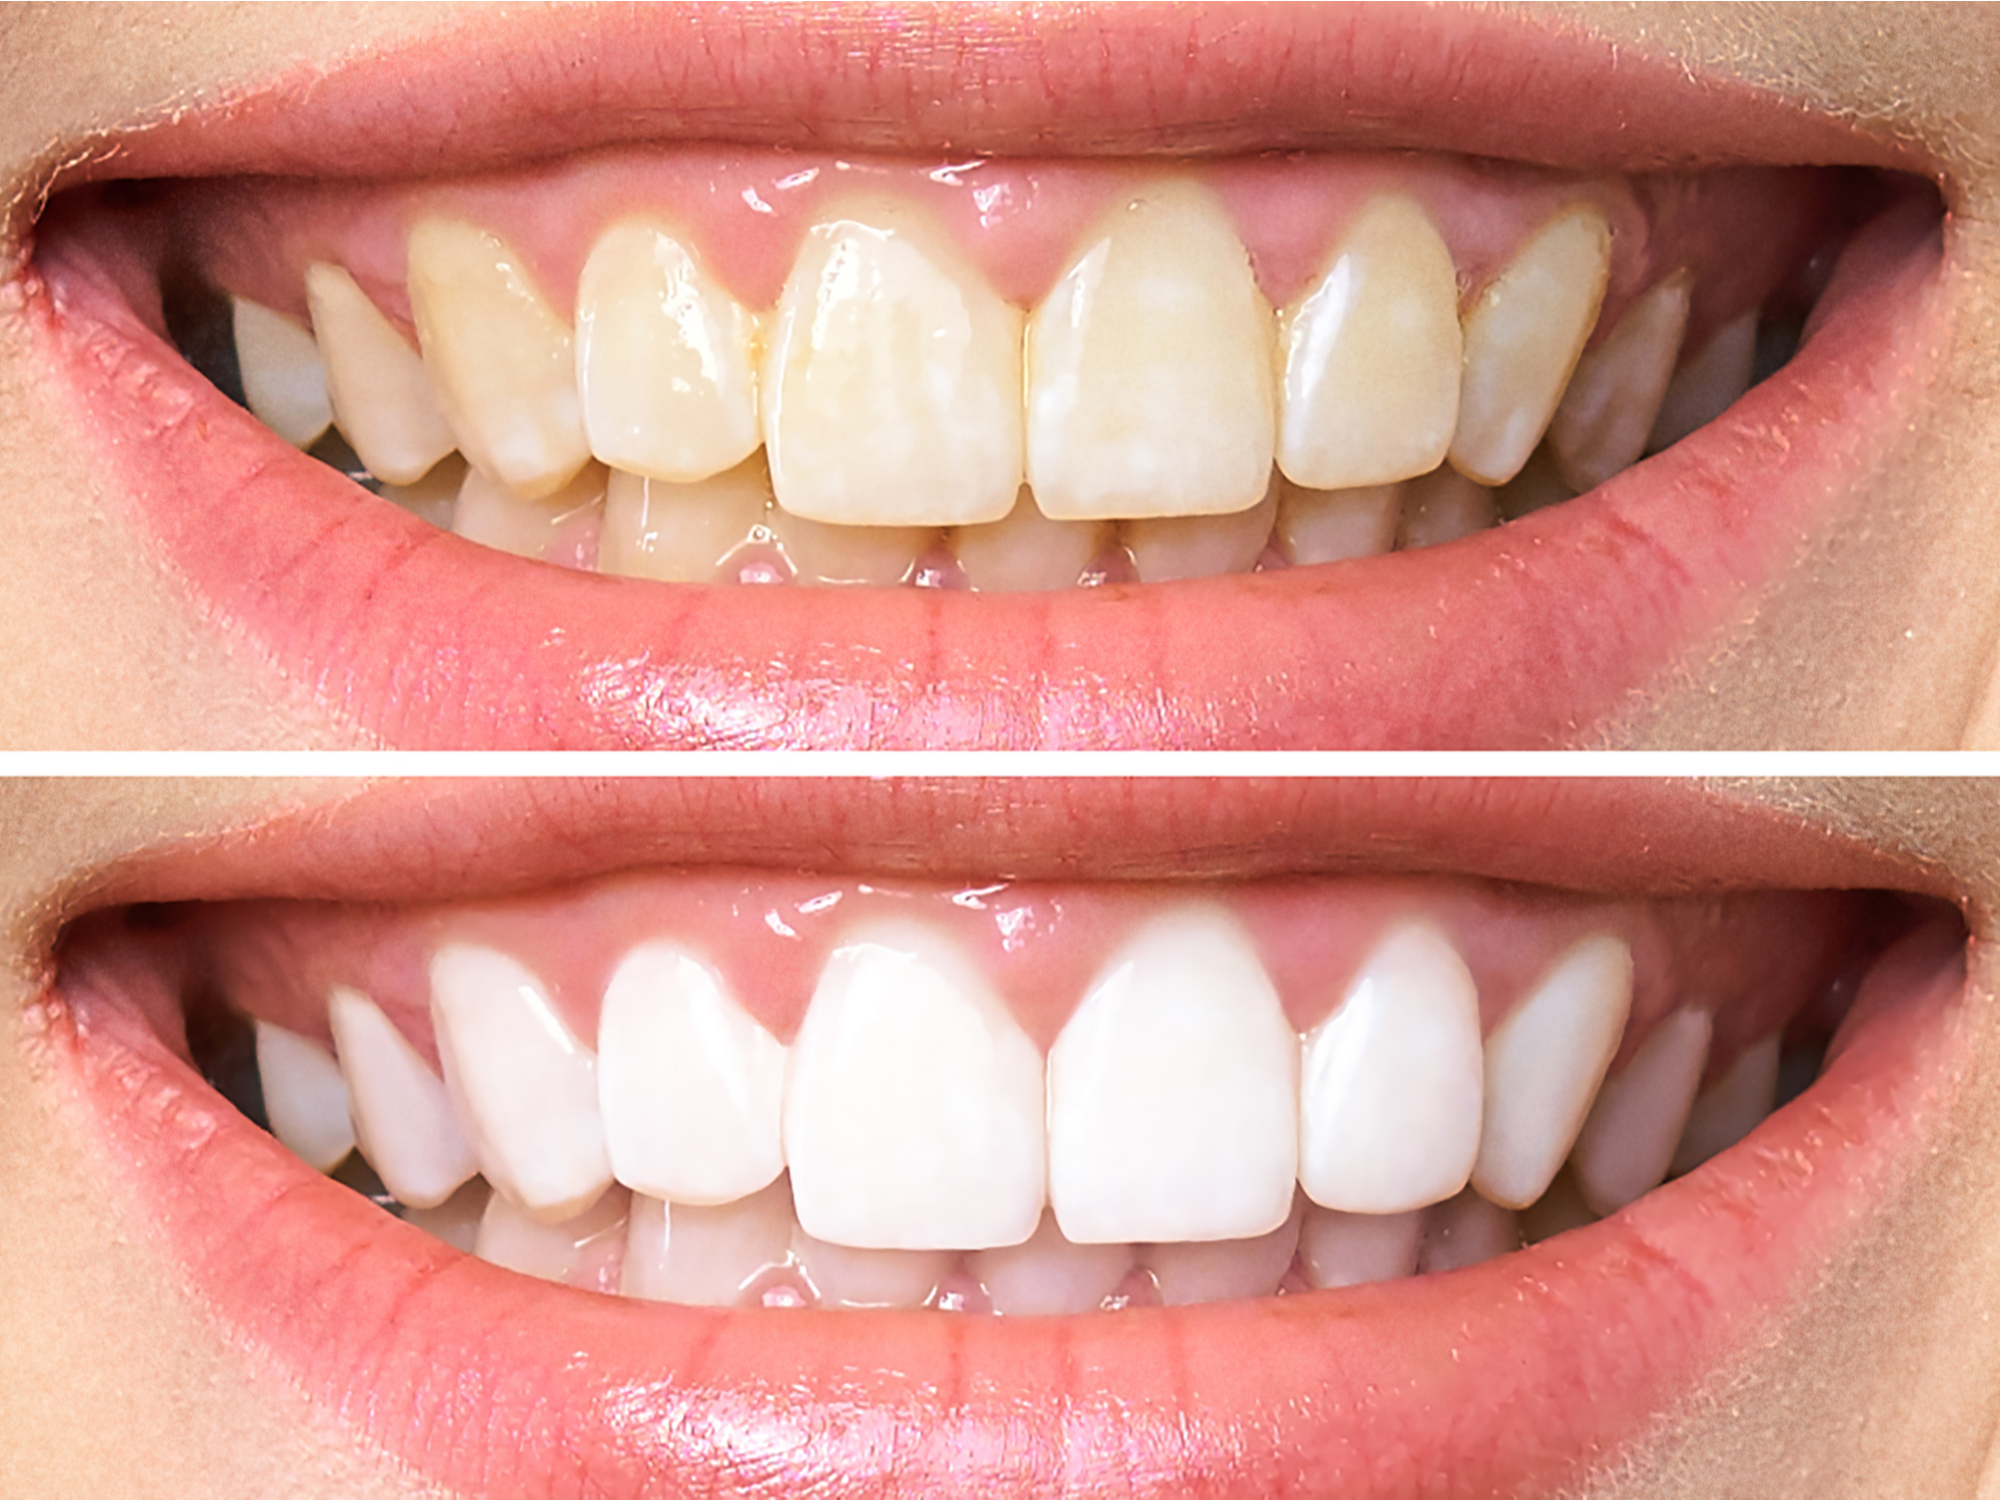 Tips to Preserve the Results of Professional Teeth Whitening